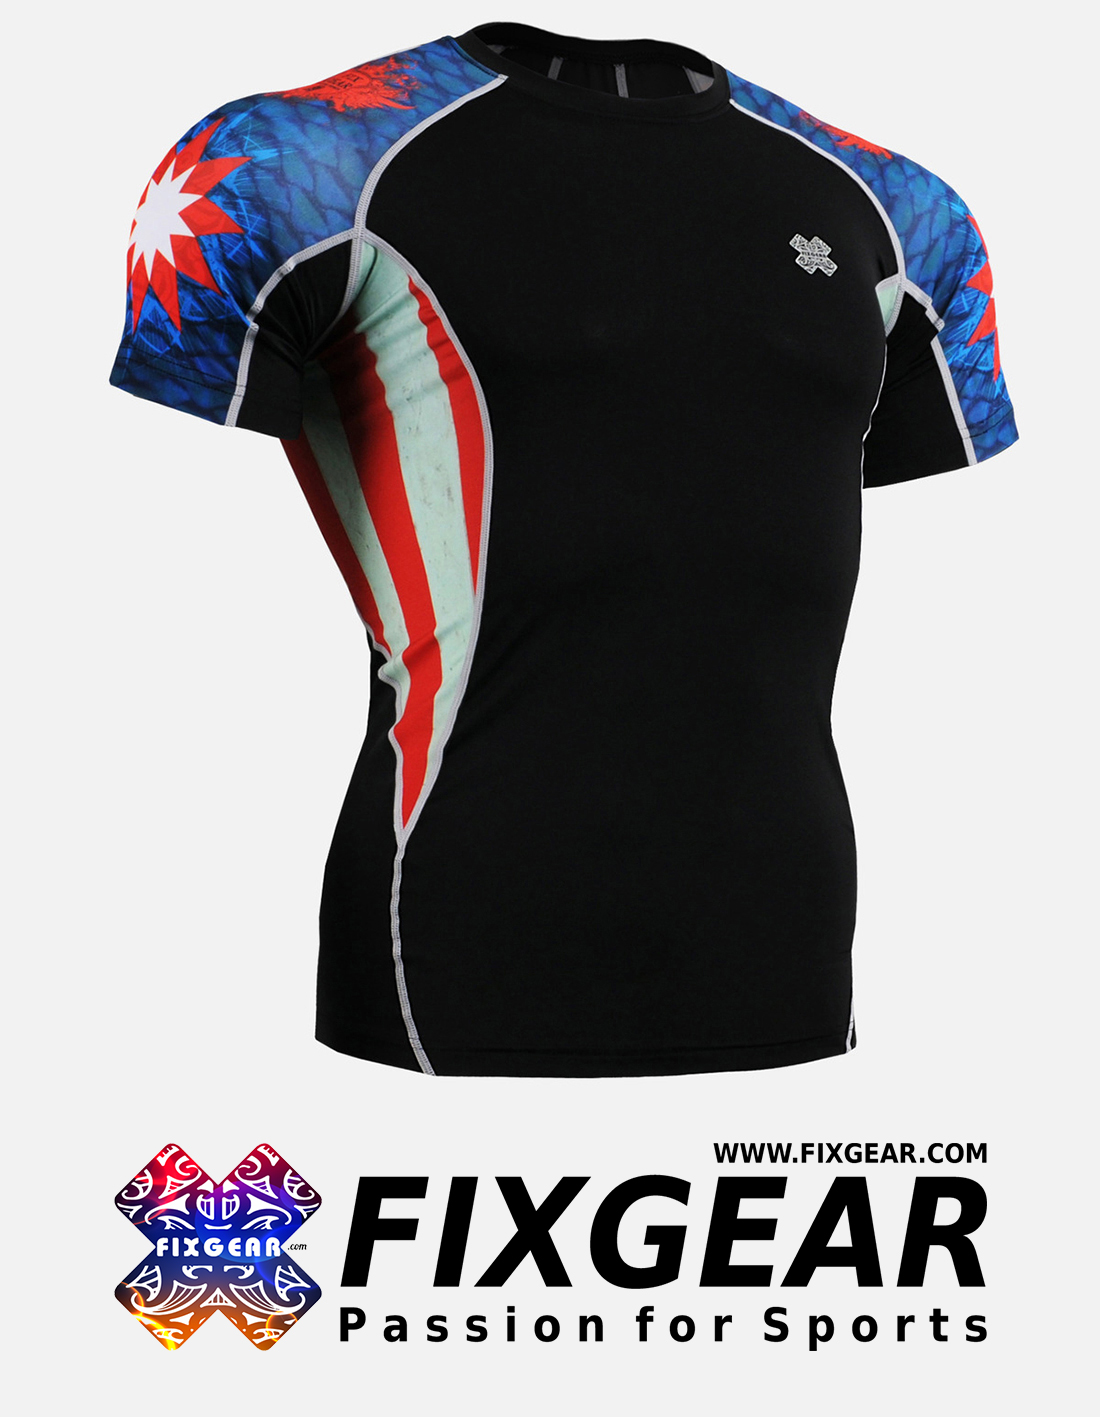 FIXGEAR C2S-B37 Compression Base Layer Shirt Short Sleeve